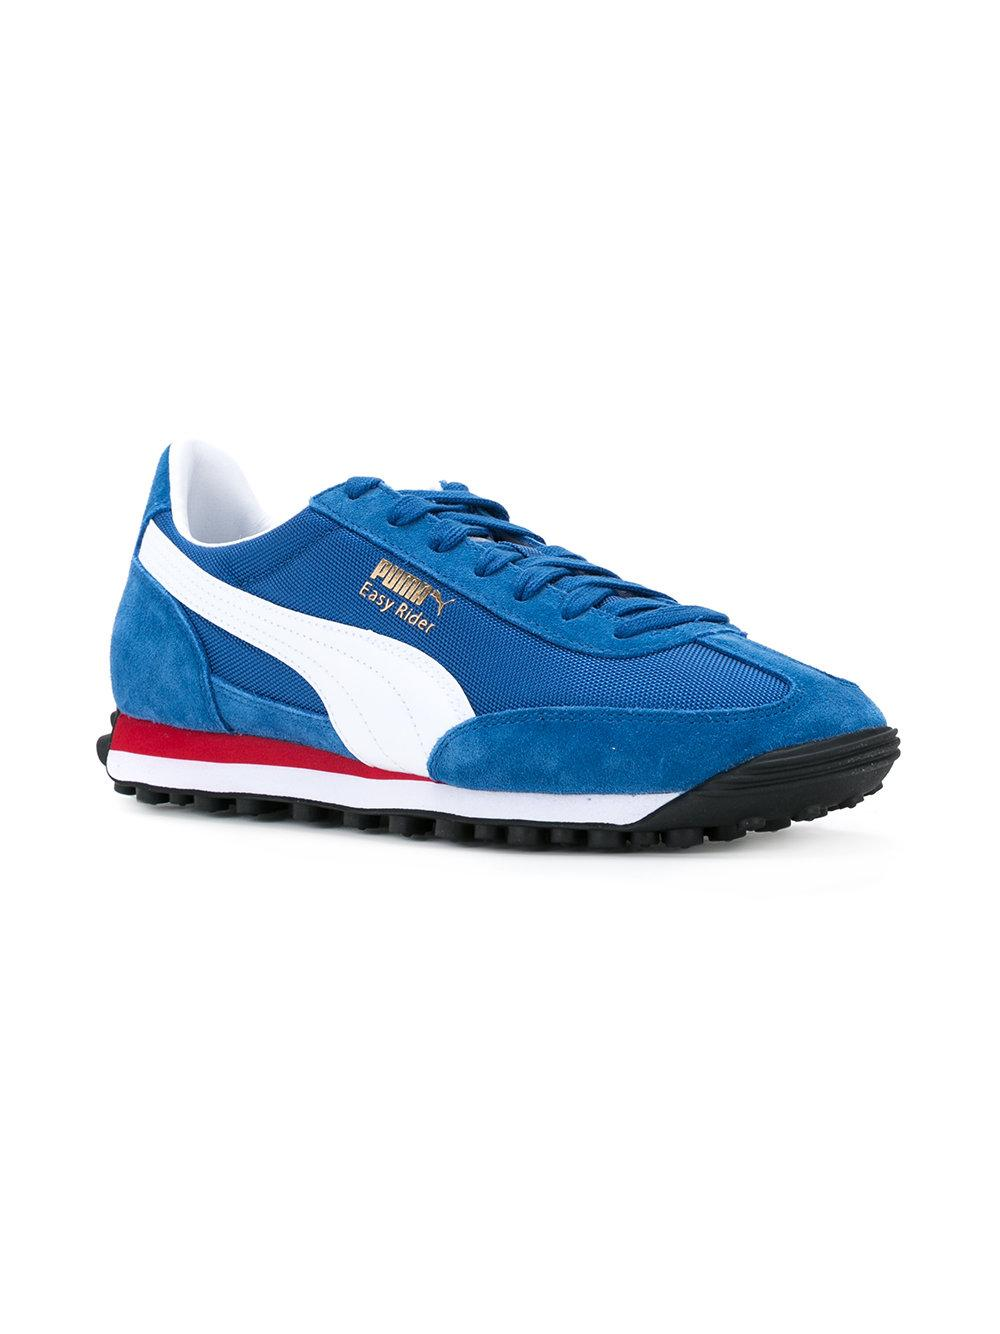 Lyst - Puma Easy Rider Sneakers in Blue